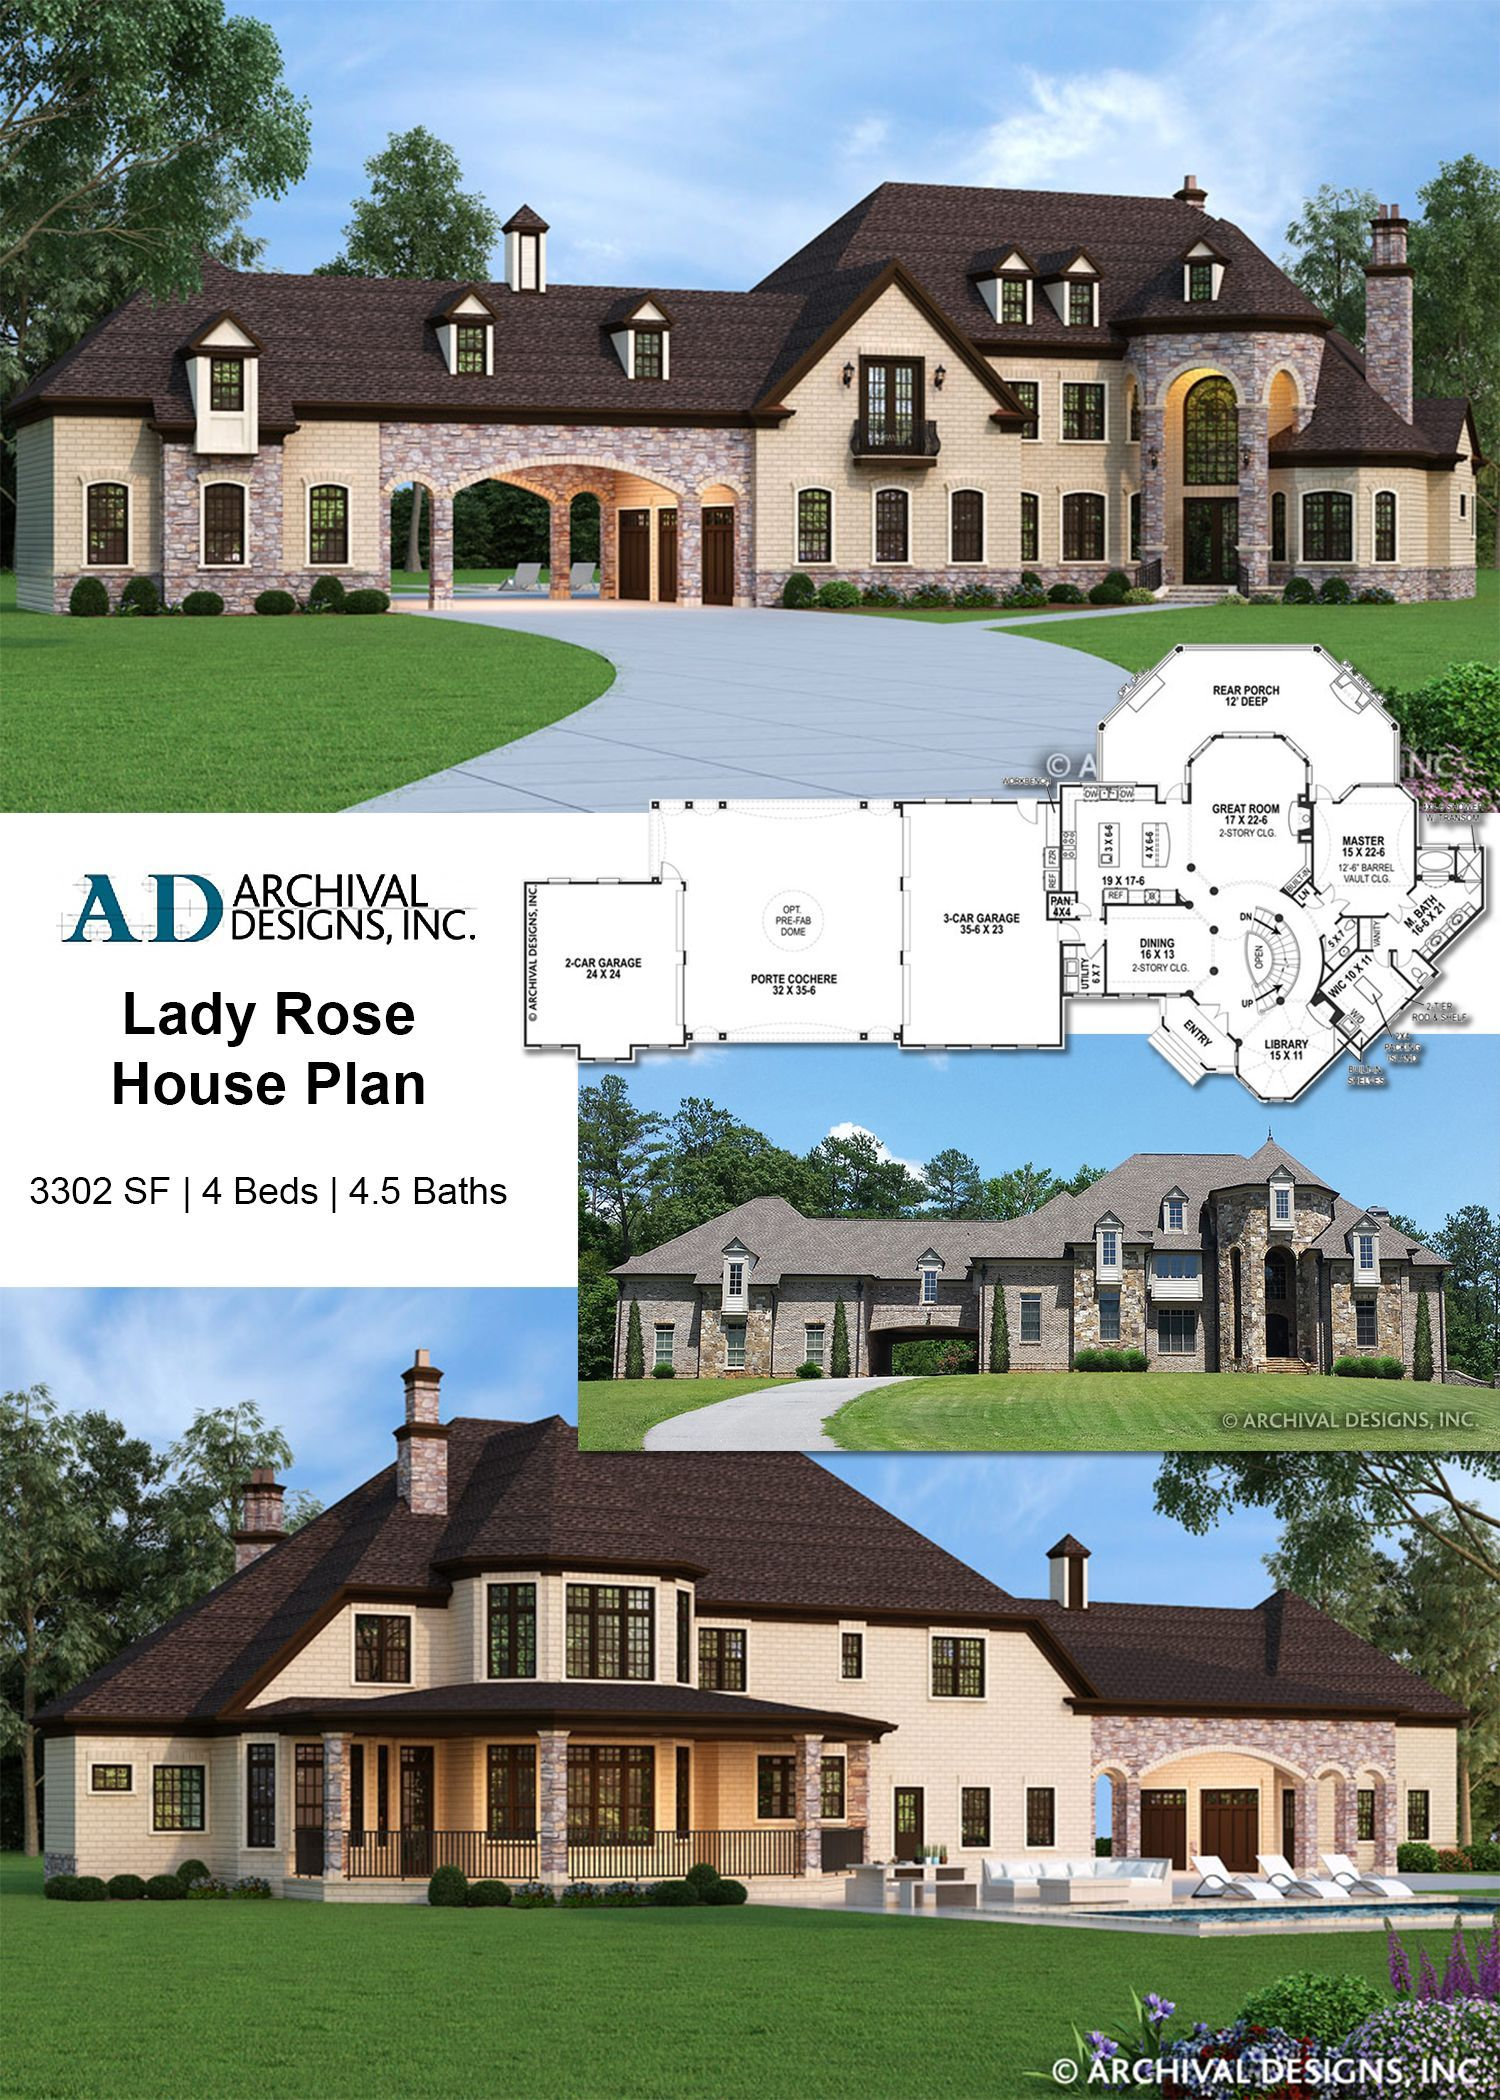 Pin By Greg Jaensch On Dream Home Build In 2020 Rose House Dream House Plans Craftsman House Plans